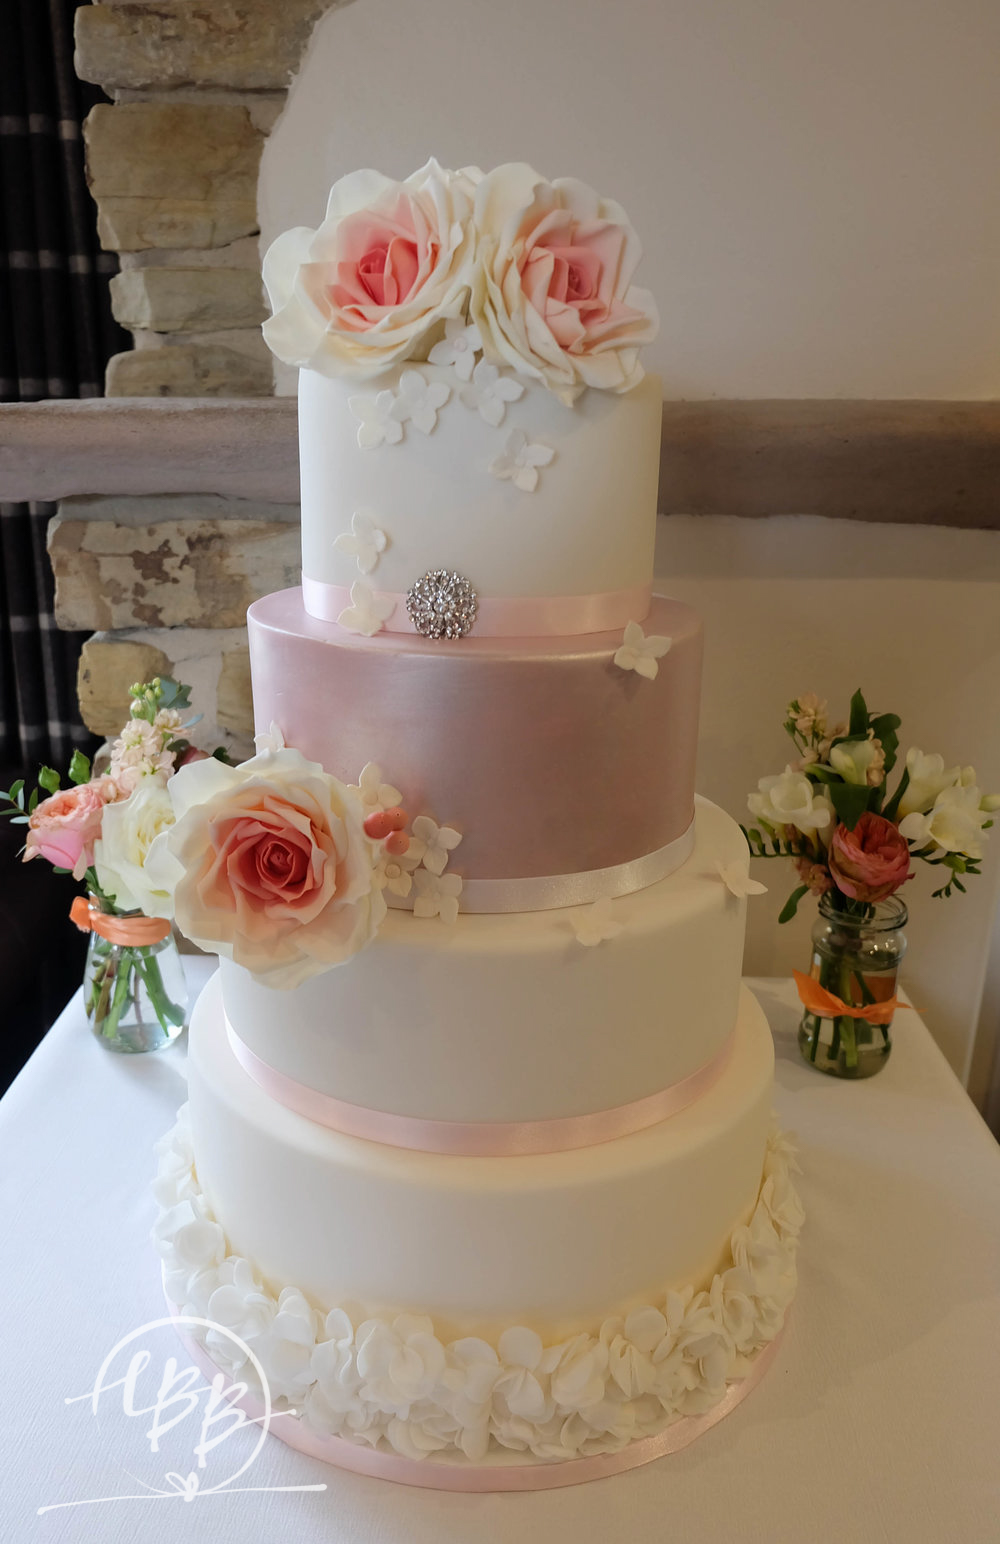 Hyde Bank Farm Sugar Flower Ruffle Wedding Cake.jpg